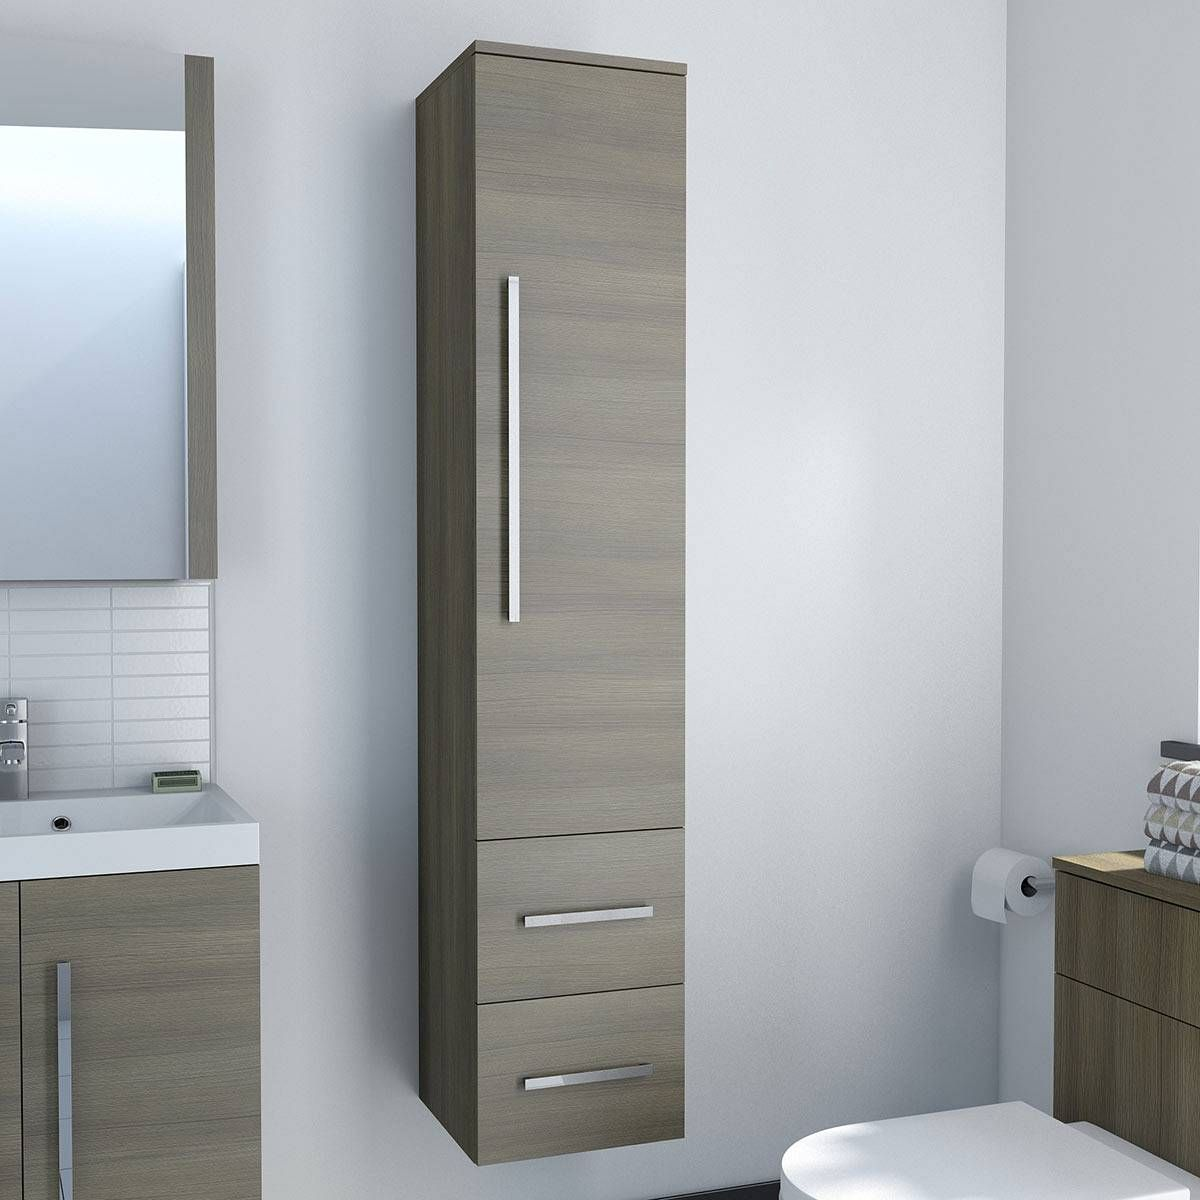 tall narrow kitchen cabinet discount faucets bathroom cabinets home decor pinterest